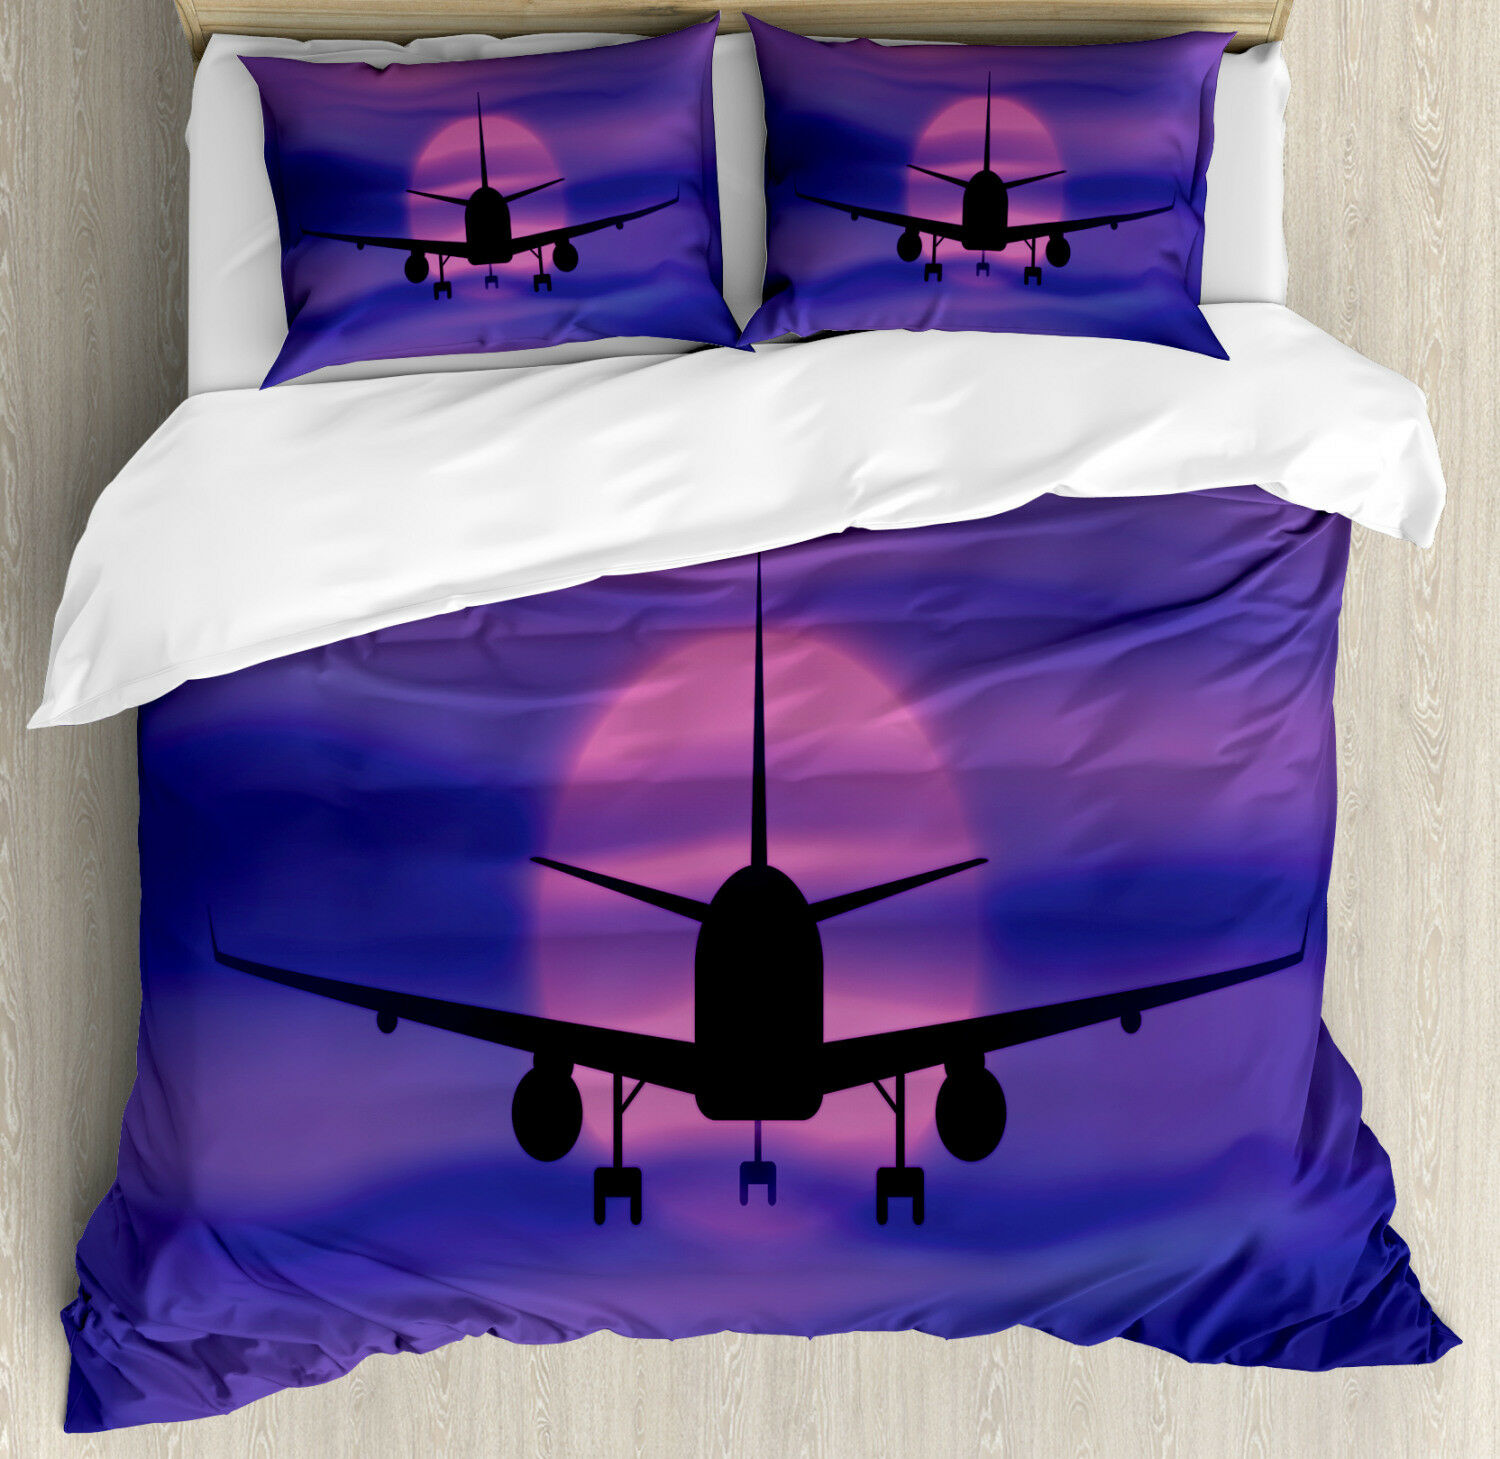 Airplane Duvet Cover Set with Pillow Shams Dreamy Sky Traveling Print